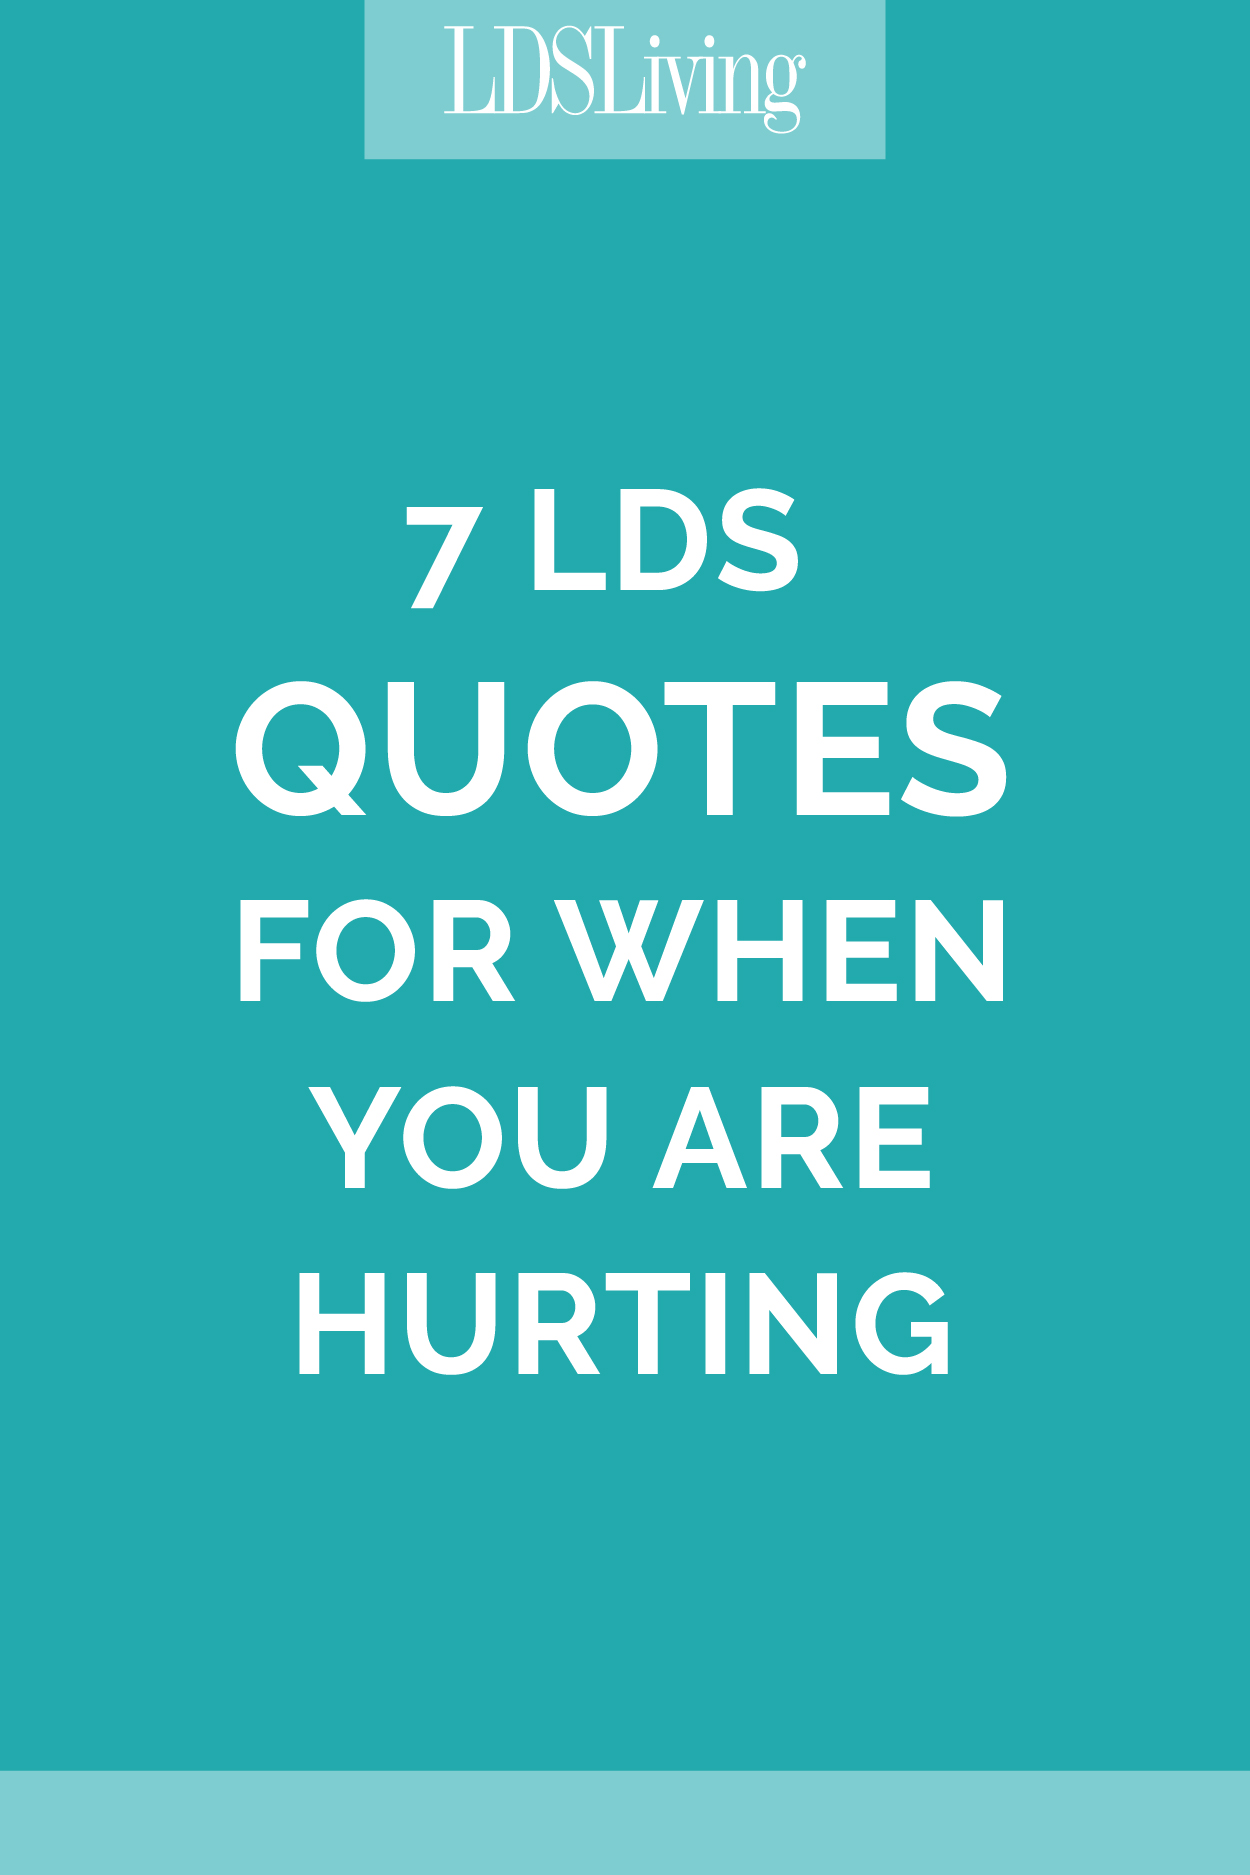 8 LDS Quotes for When You Are Hurting